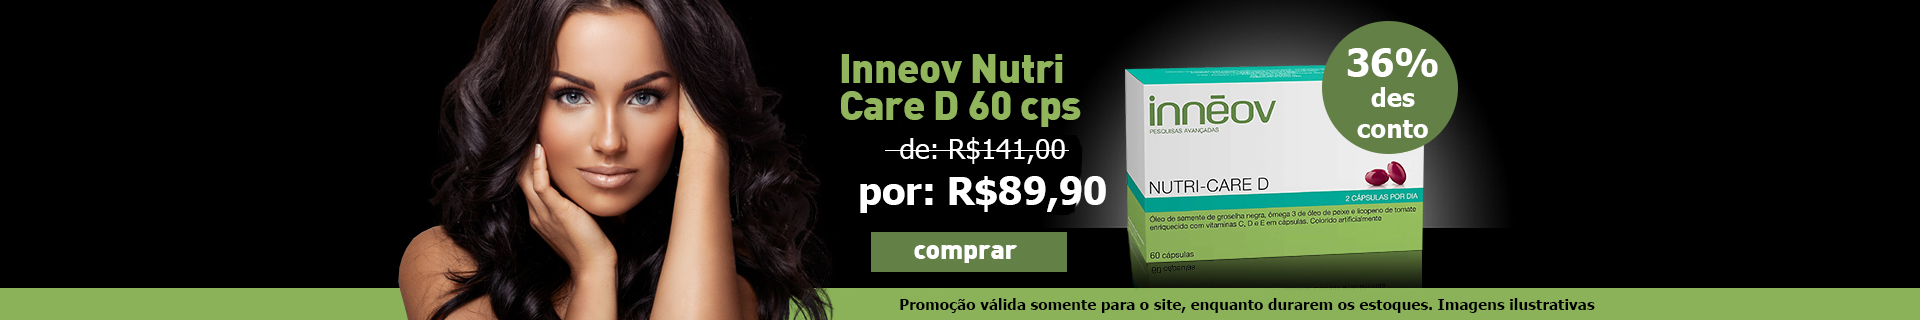 Home | Inneov Nutri Care D 89,90